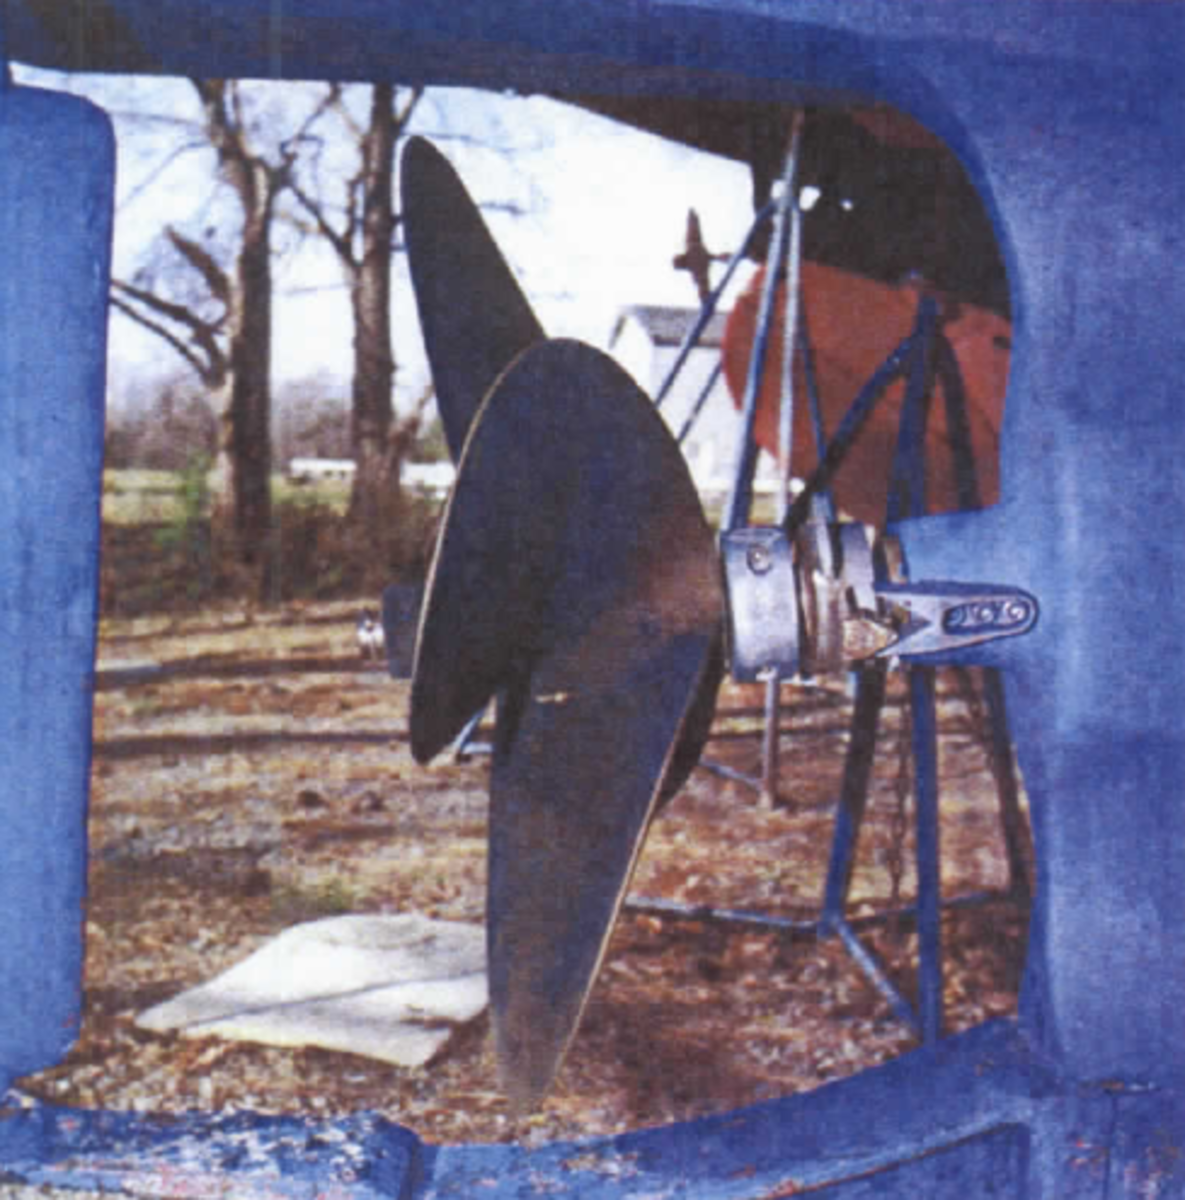 A good example of a raked propeller: the blades tilt in the direction of the faces. raking can be used to increase overall blade area or influence a vessel's attitude, bow up or bow down, while underway.